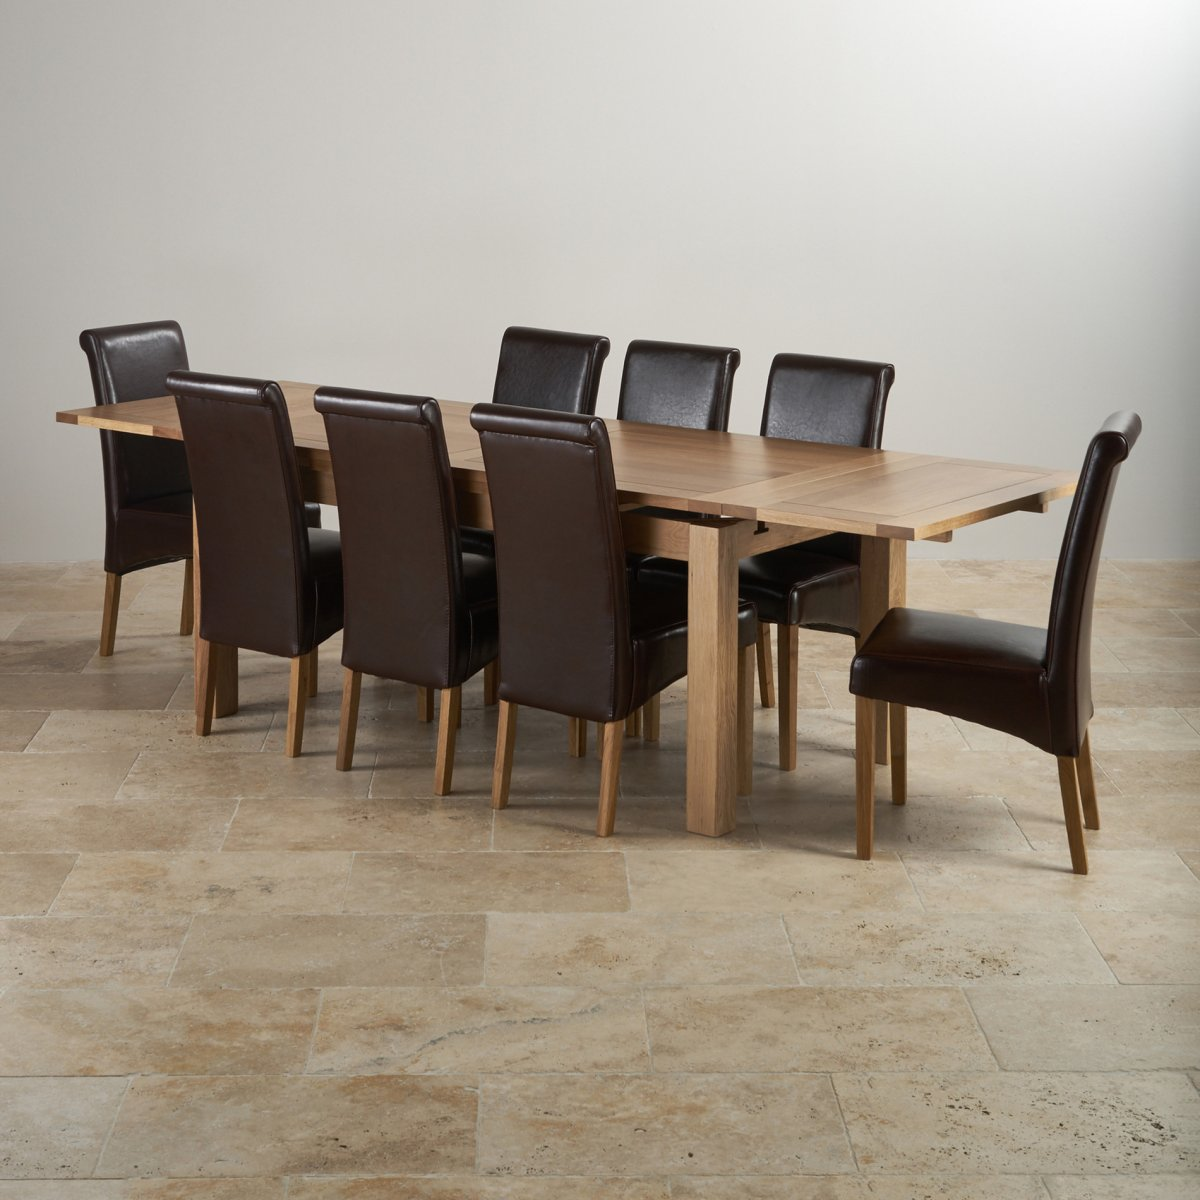 Oak Wood Table And Chairs: 6ft Table With 8 Chairs